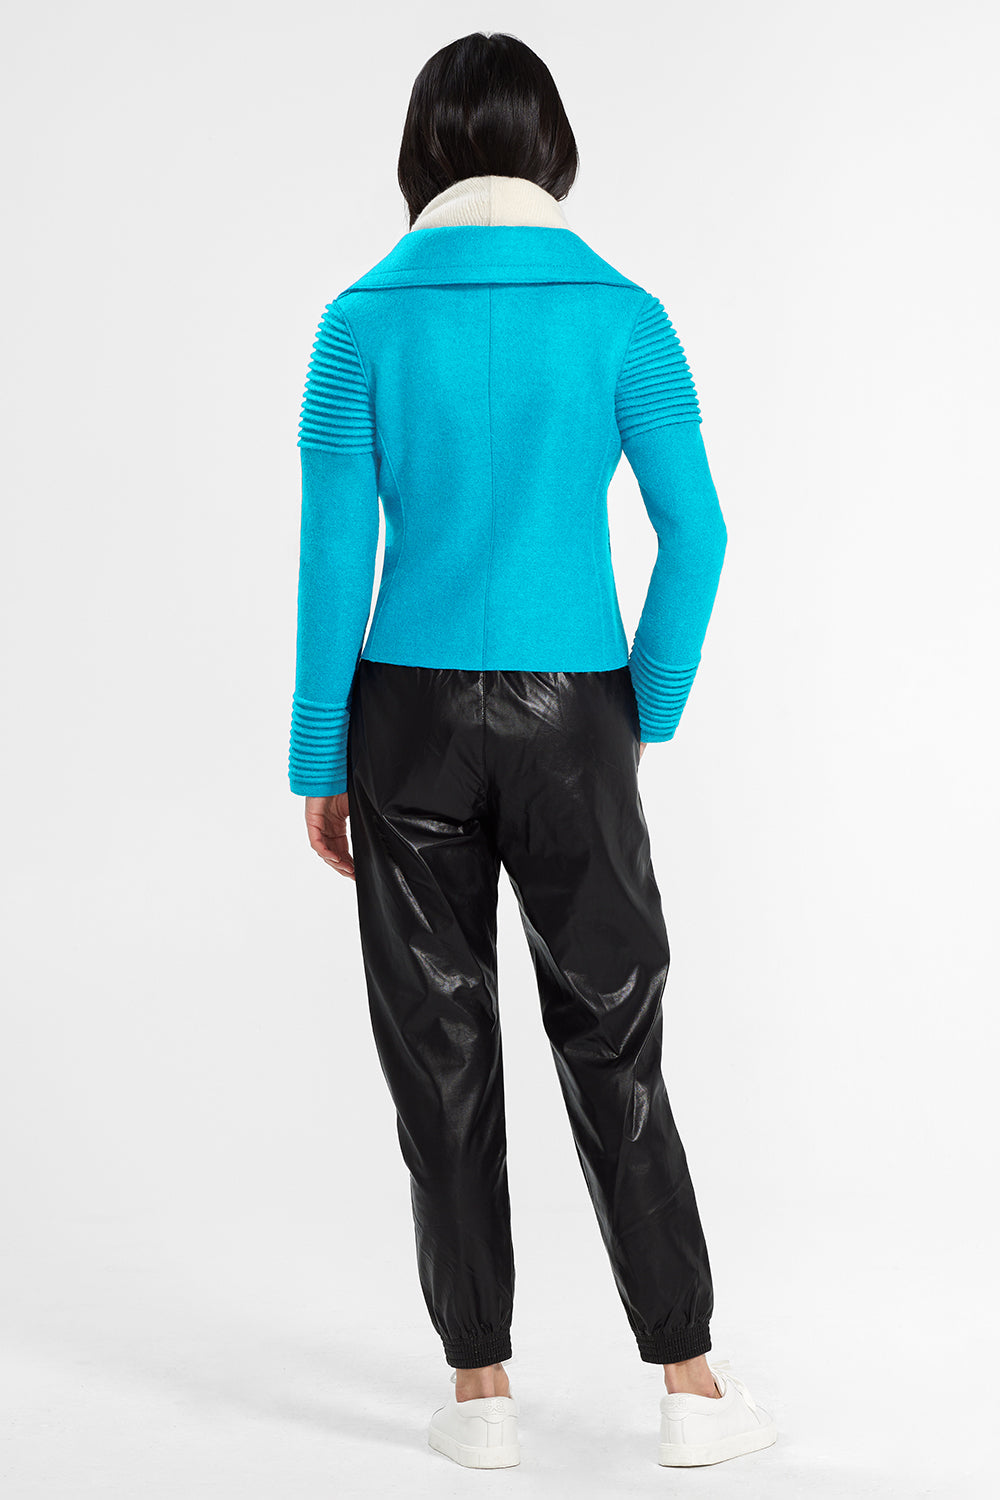 Sentaler Bomber Jacket with Ribbed Shoulders and Cuffs featured in Superfine Alpaca and available in AI Aqua. Seen from back.